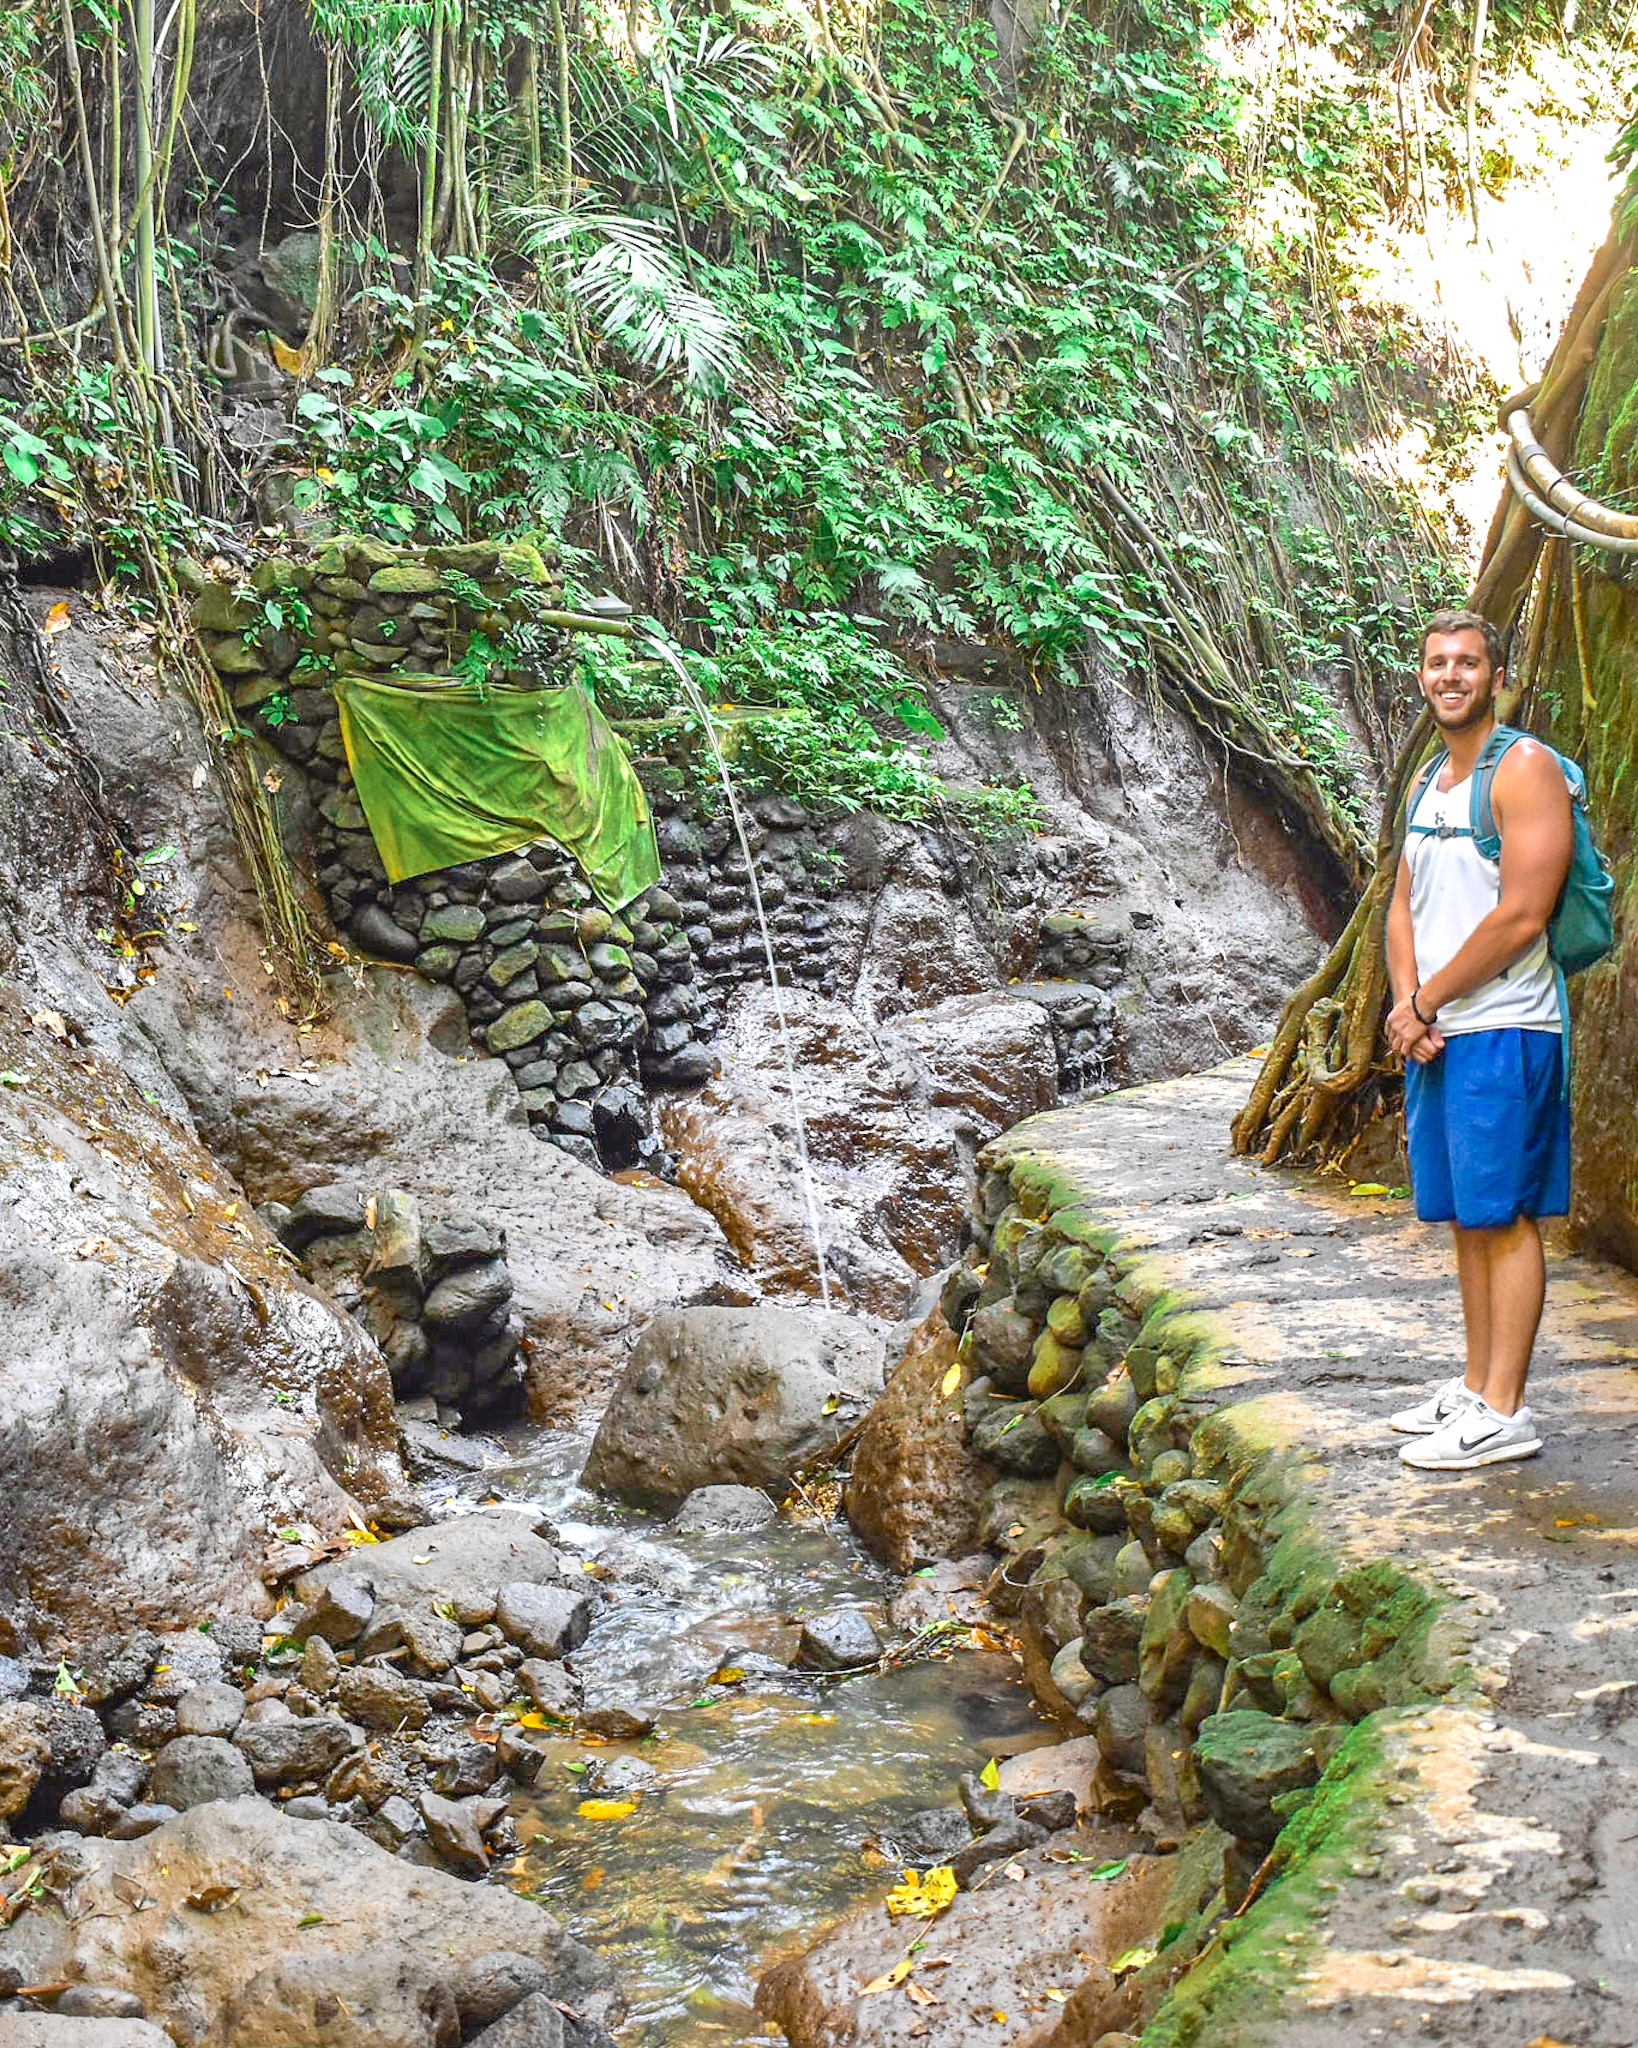 Man Checks Out the Jungle at Ubud Monkey Forest